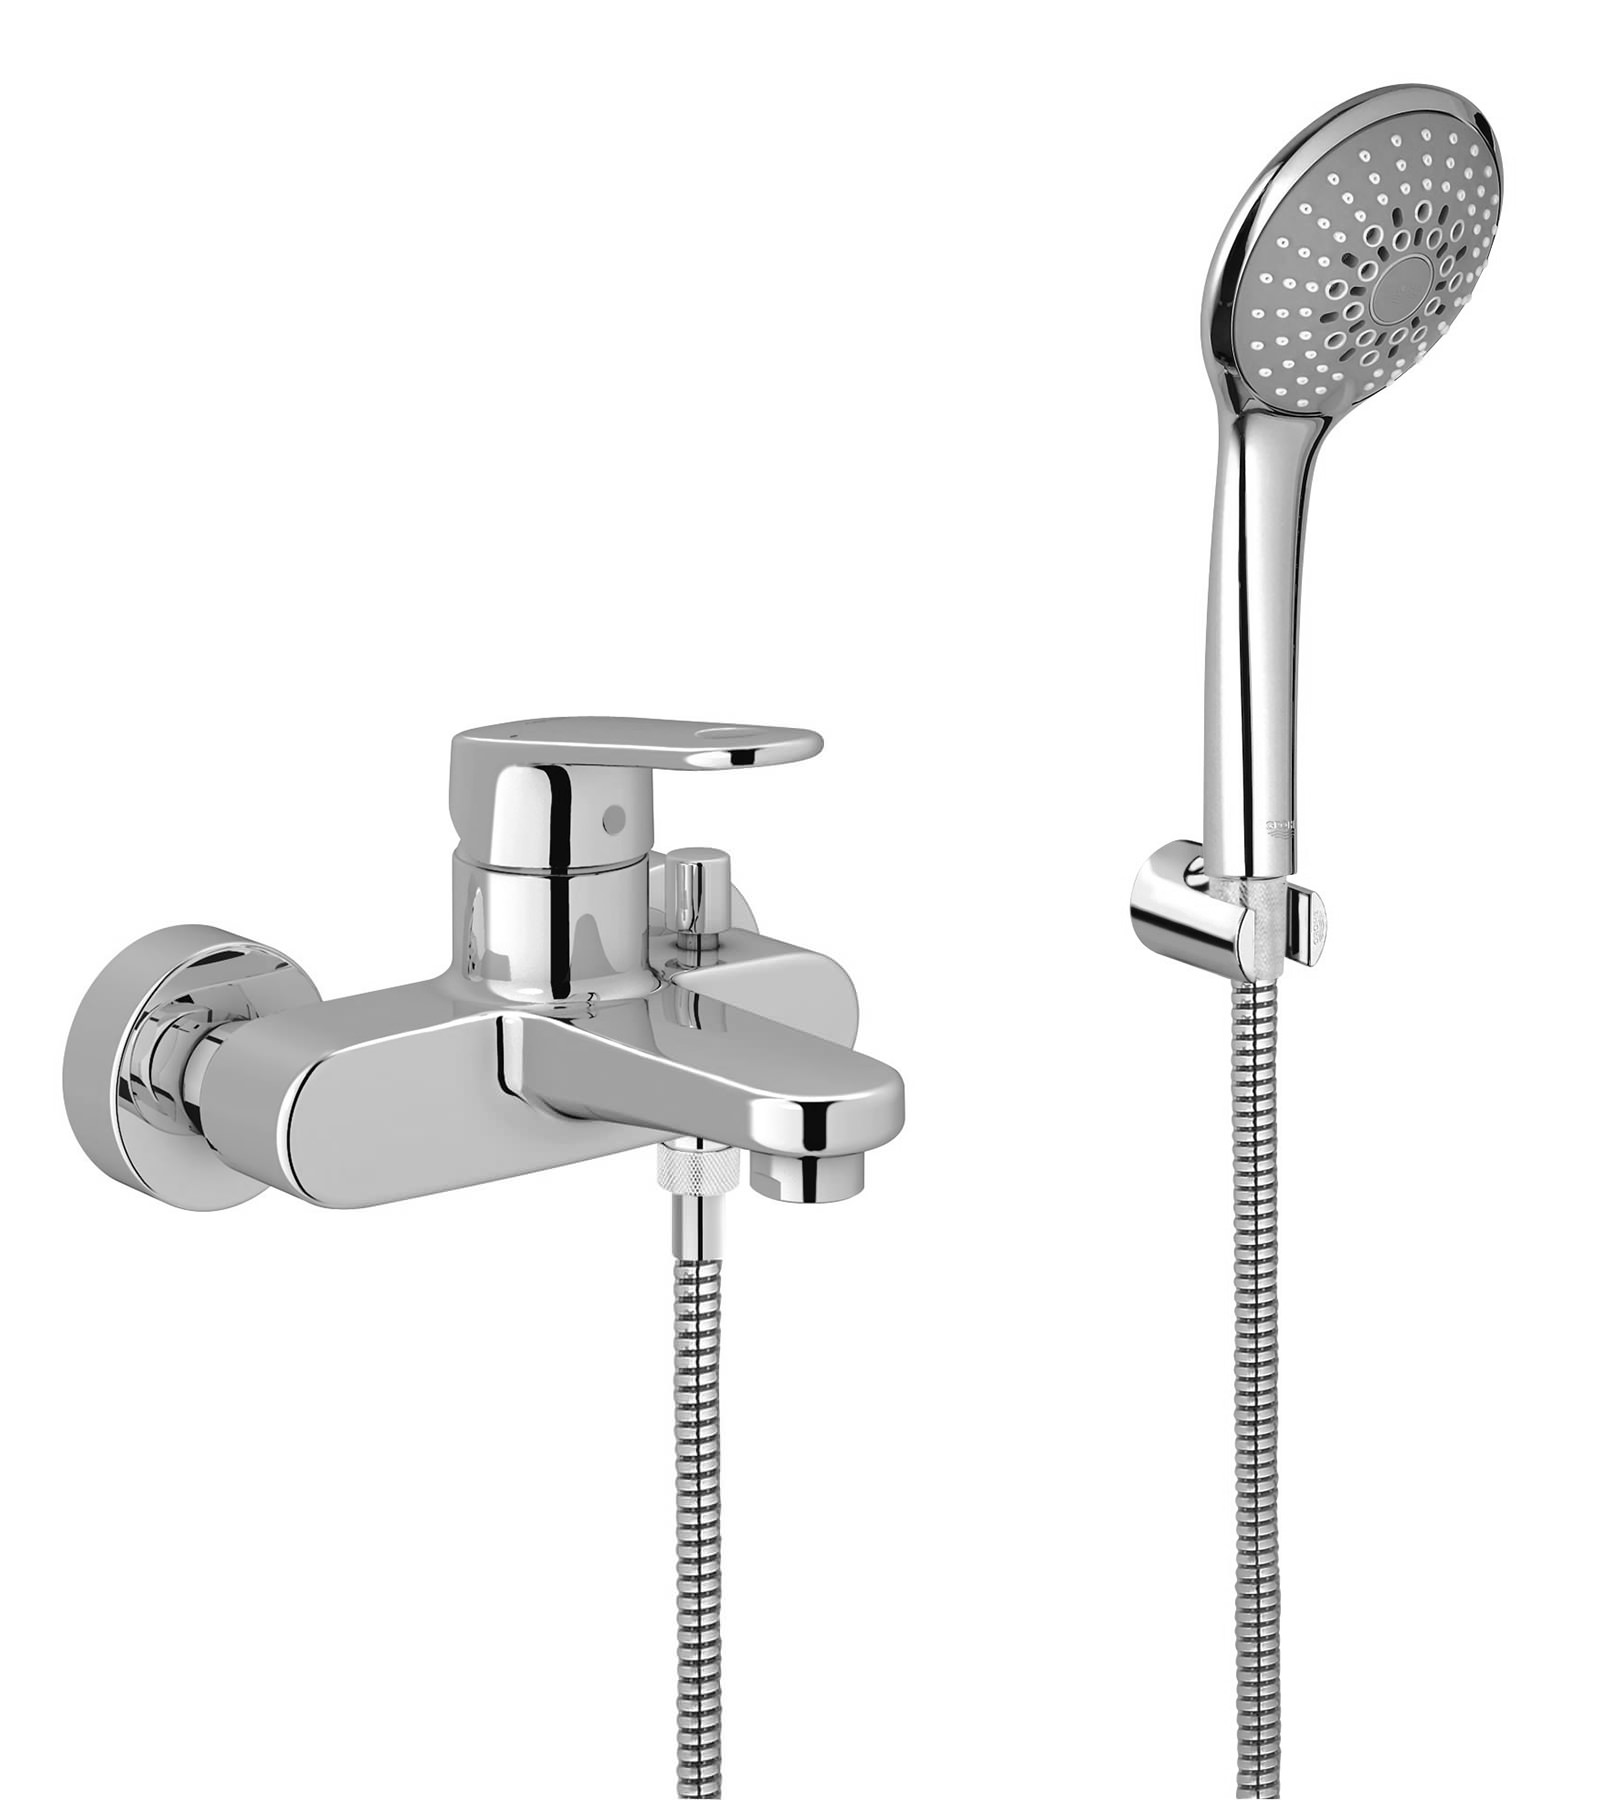 grohe europlus bath shower mixer tap with shower kit. Black Bedroom Furniture Sets. Home Design Ideas